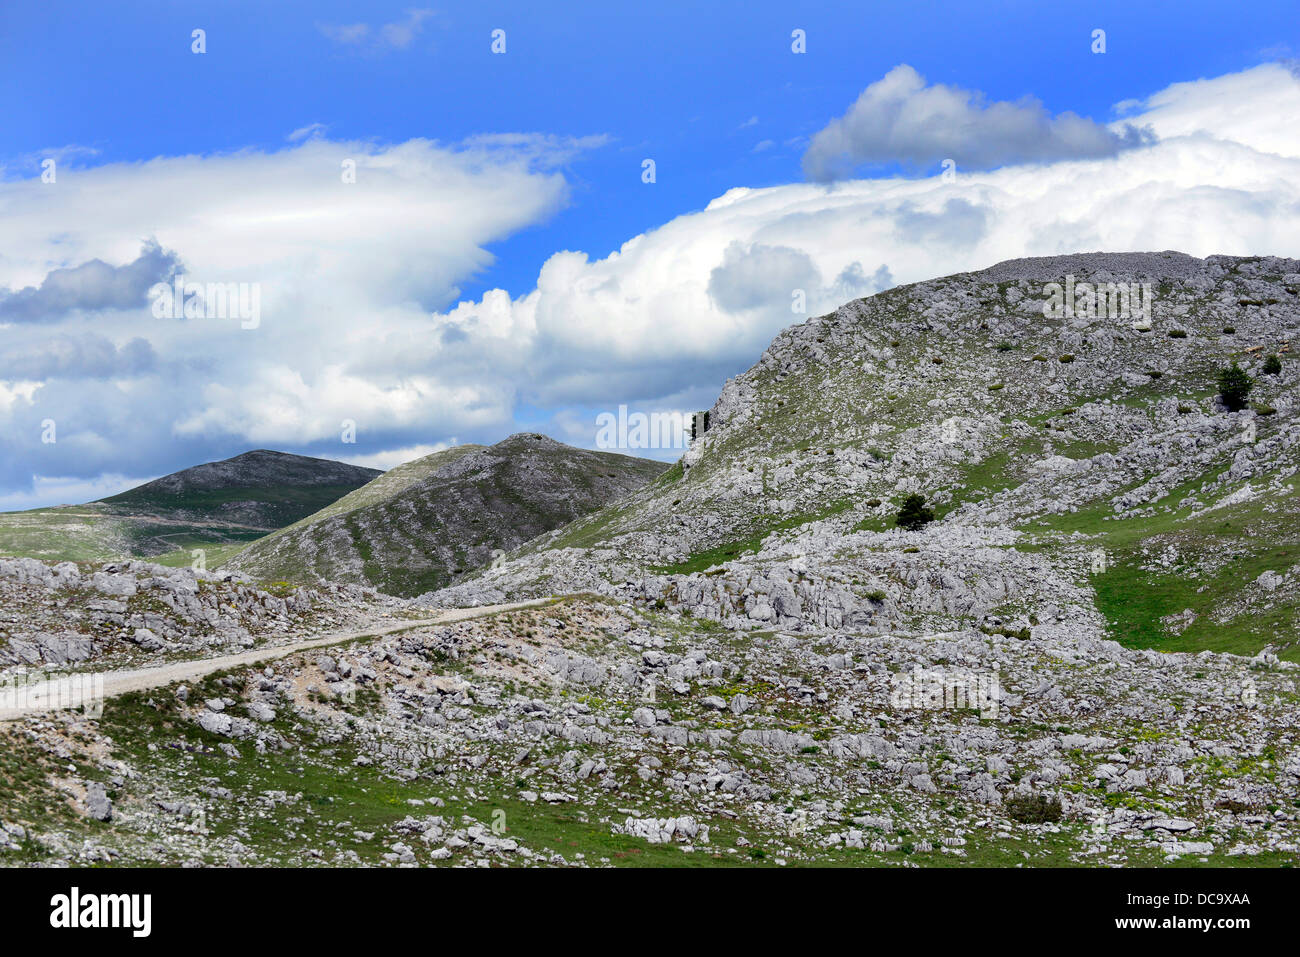 Beautiful landscapes in the Dinaric mountains in Bosnia. - Stock Image